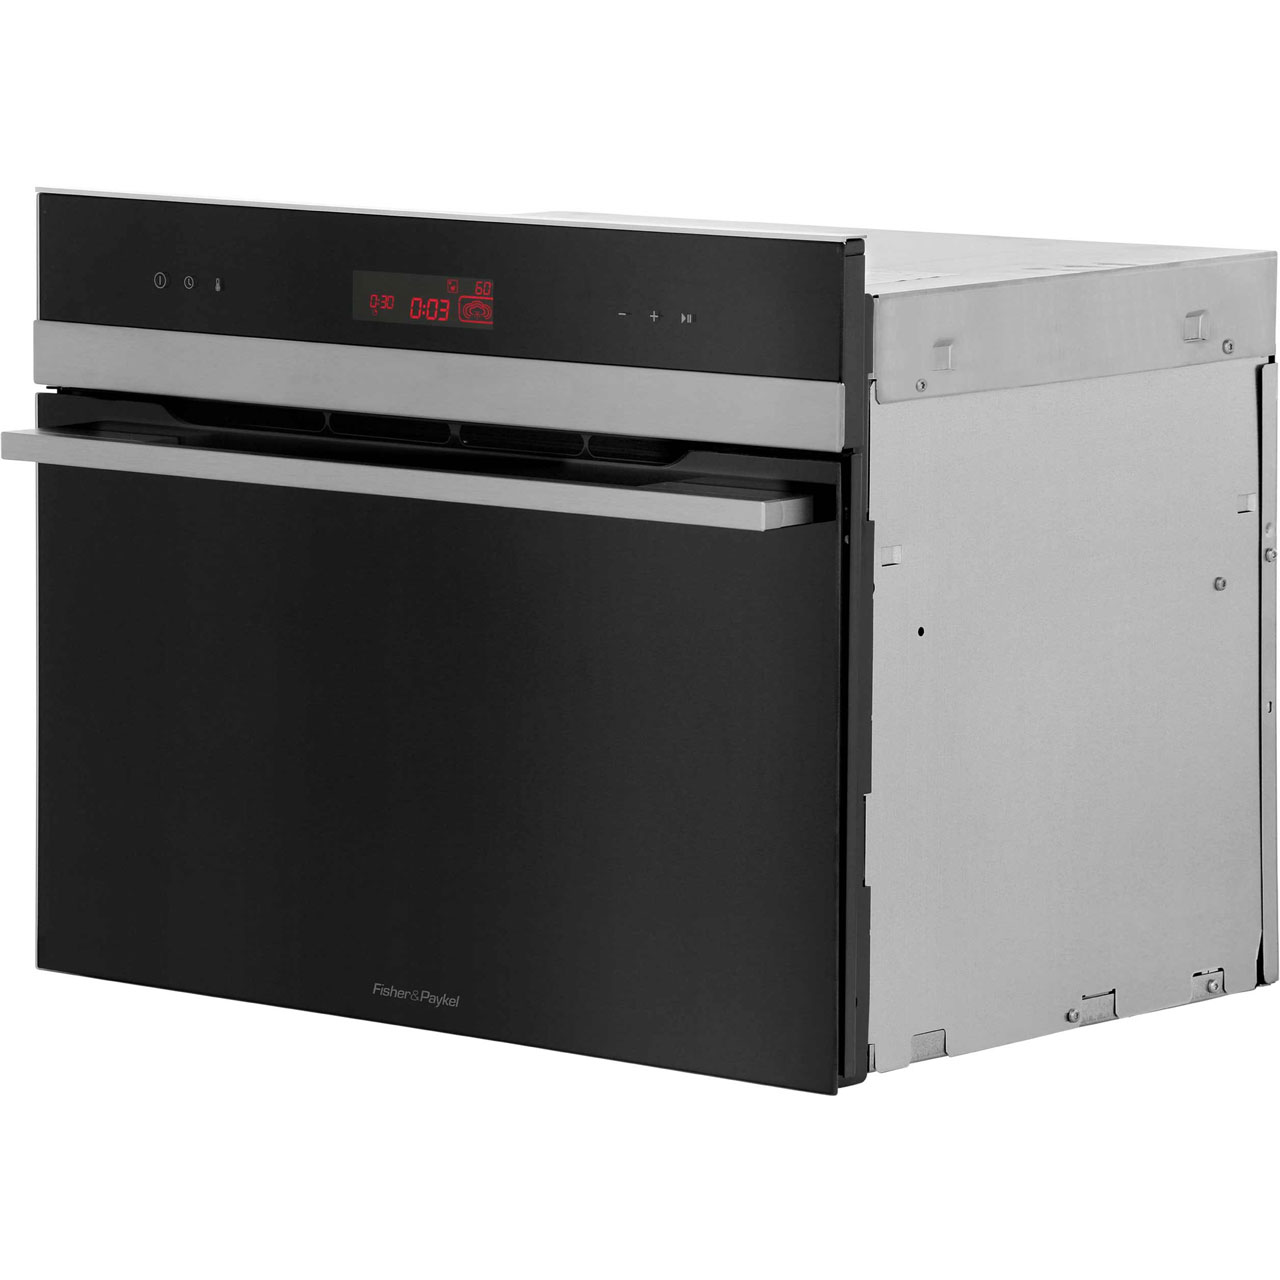 fisher paykel designer compact companion osndtx built in fisher paykel designer compact companion os60ndtx1 built in steam oven black